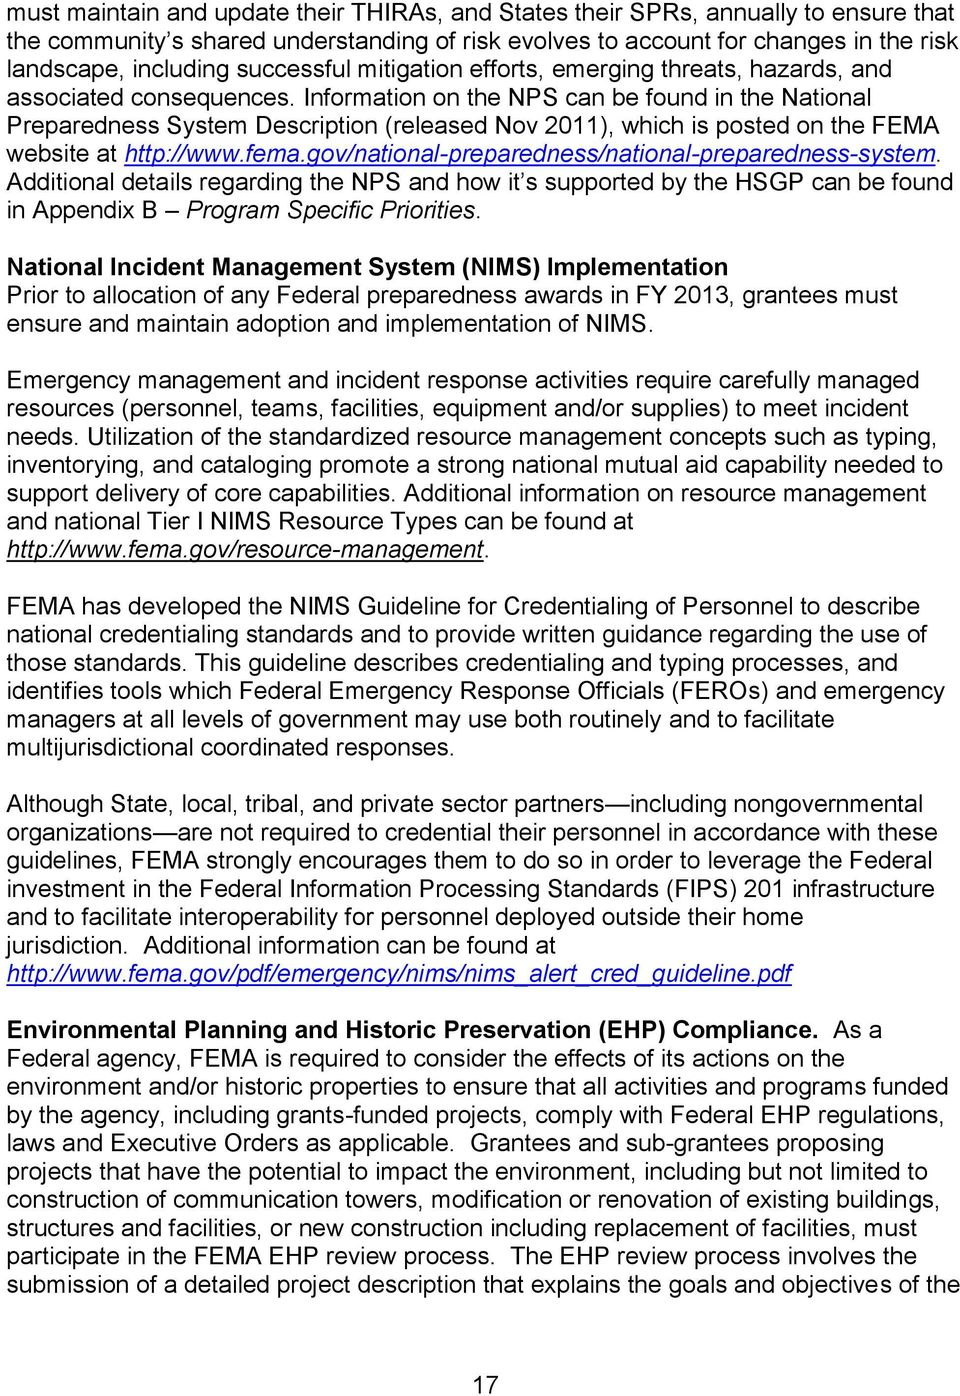 Information on the NPS can be found in the National Preparedness System Description (released Nov 2011), which is posted on the FEMA website at http://www.fema.